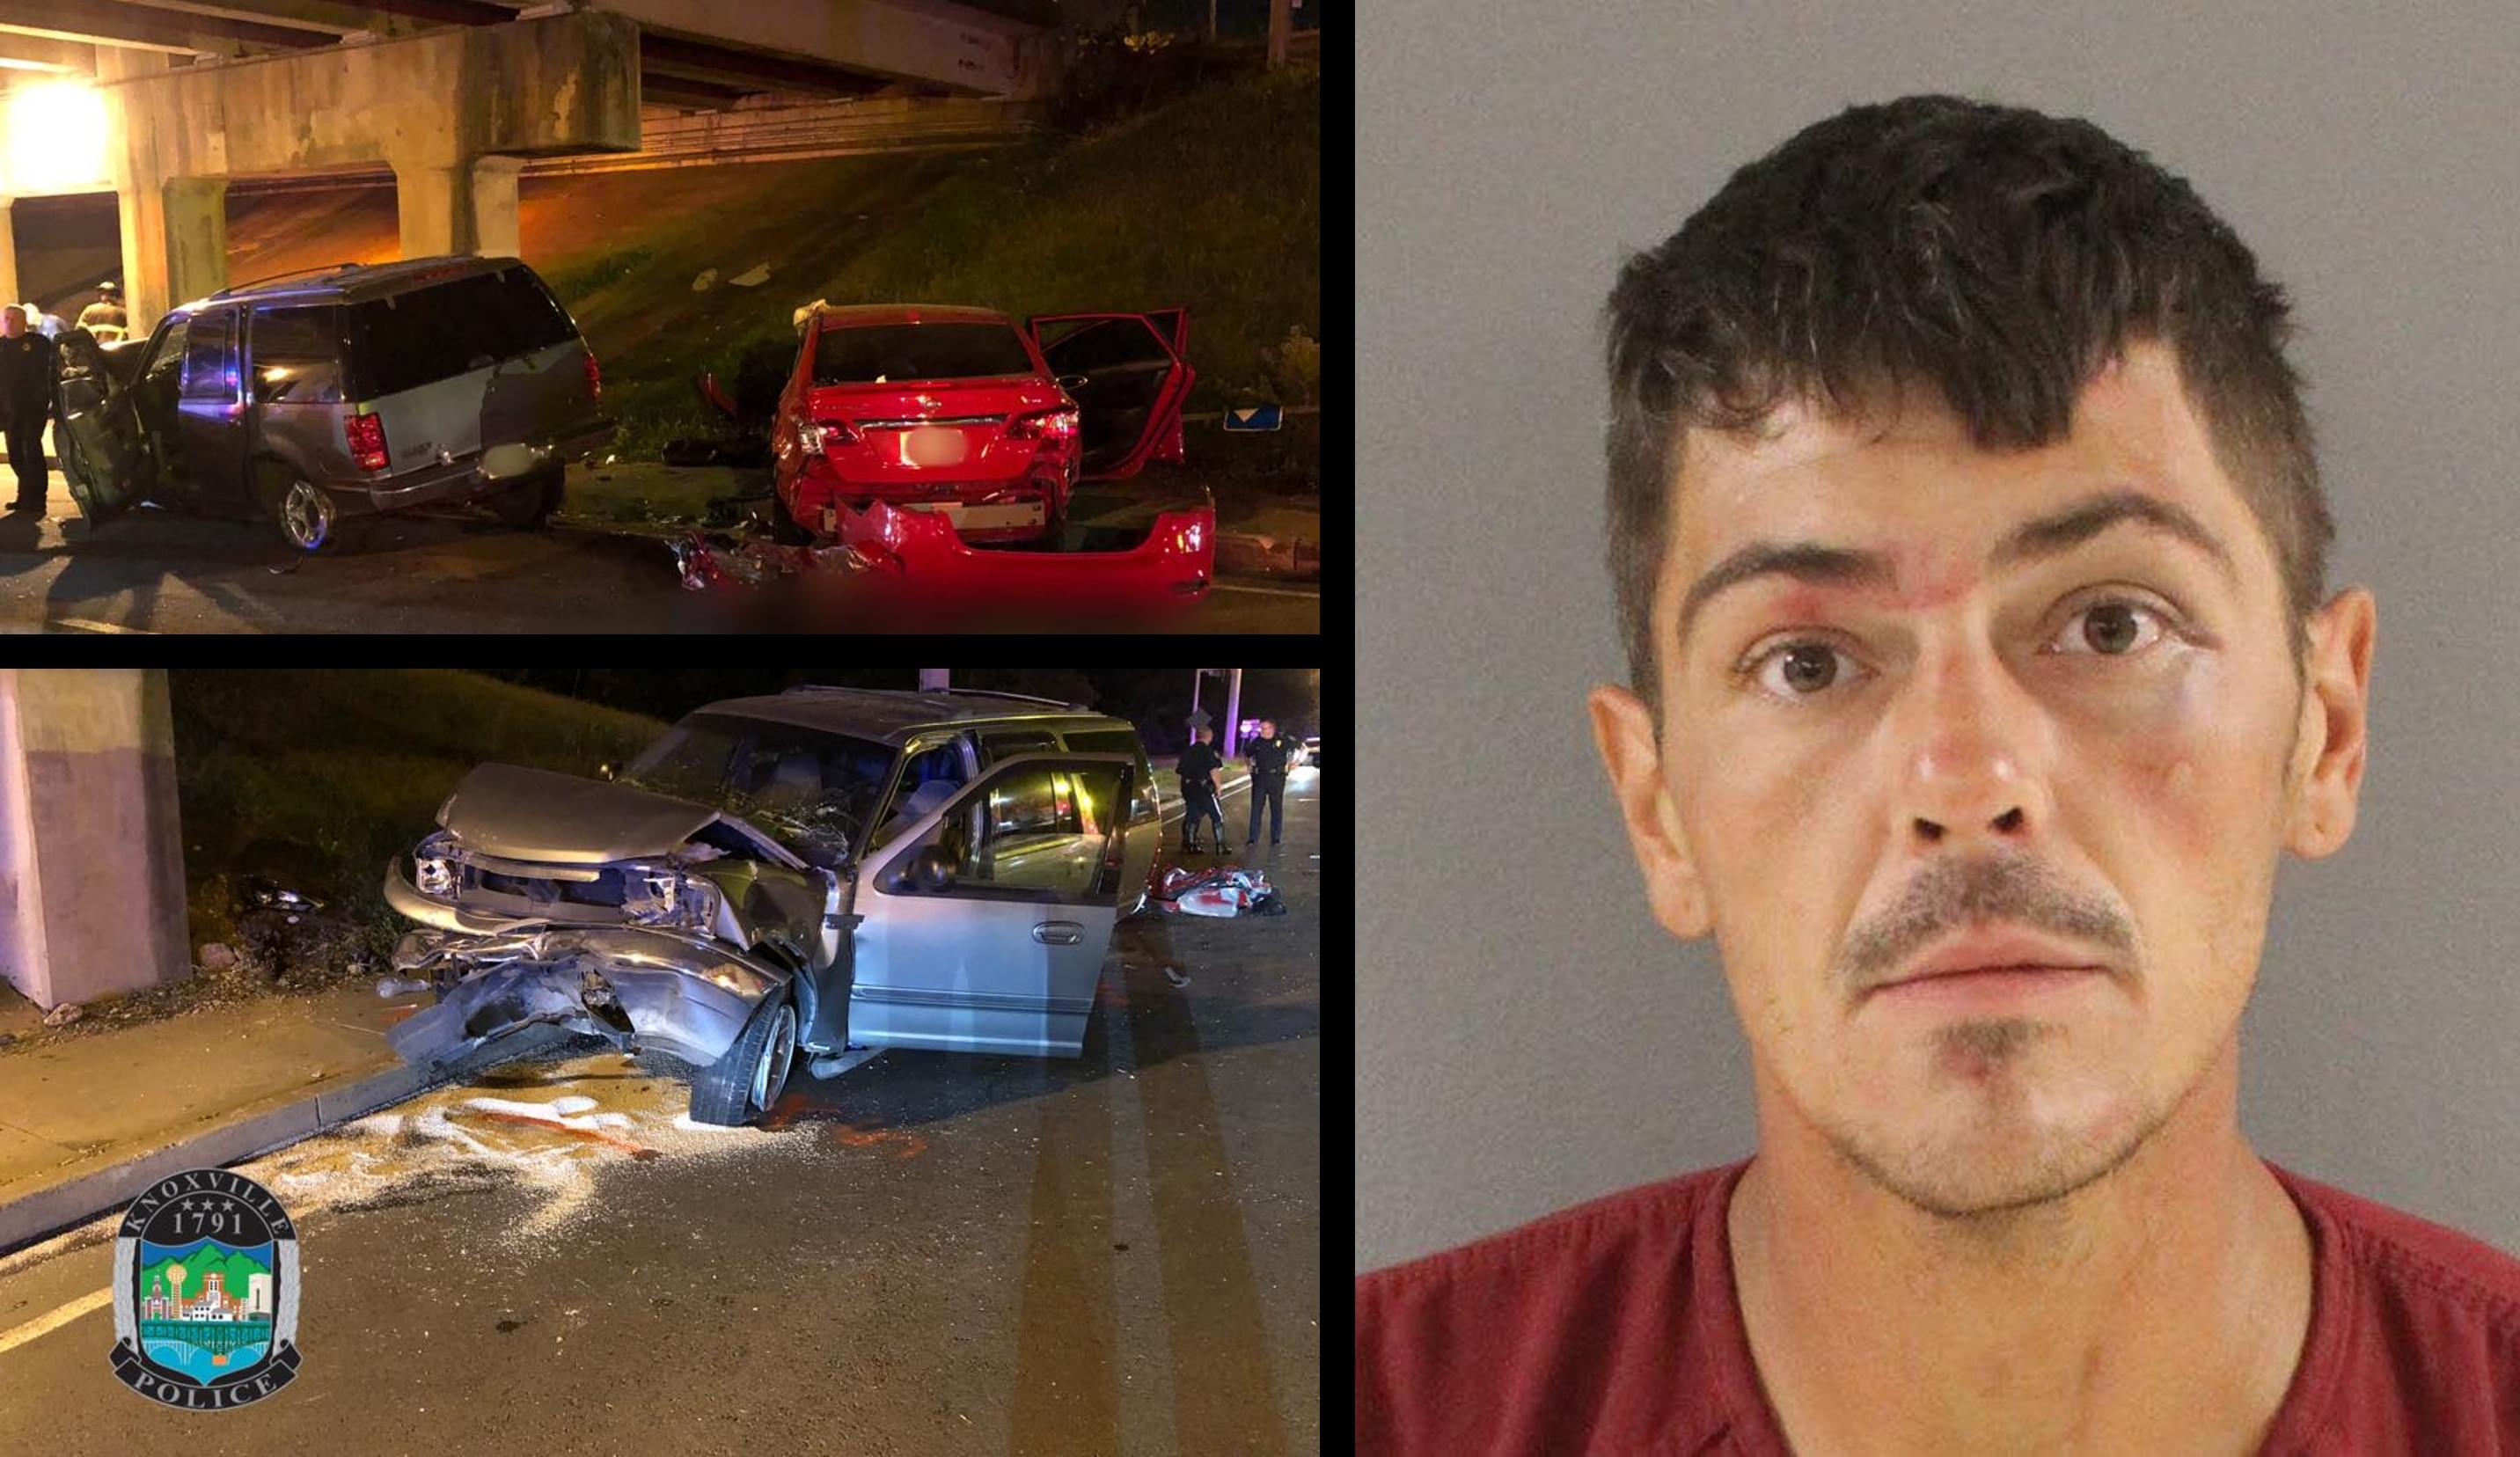 Driver Charged with Vehicular Homicide